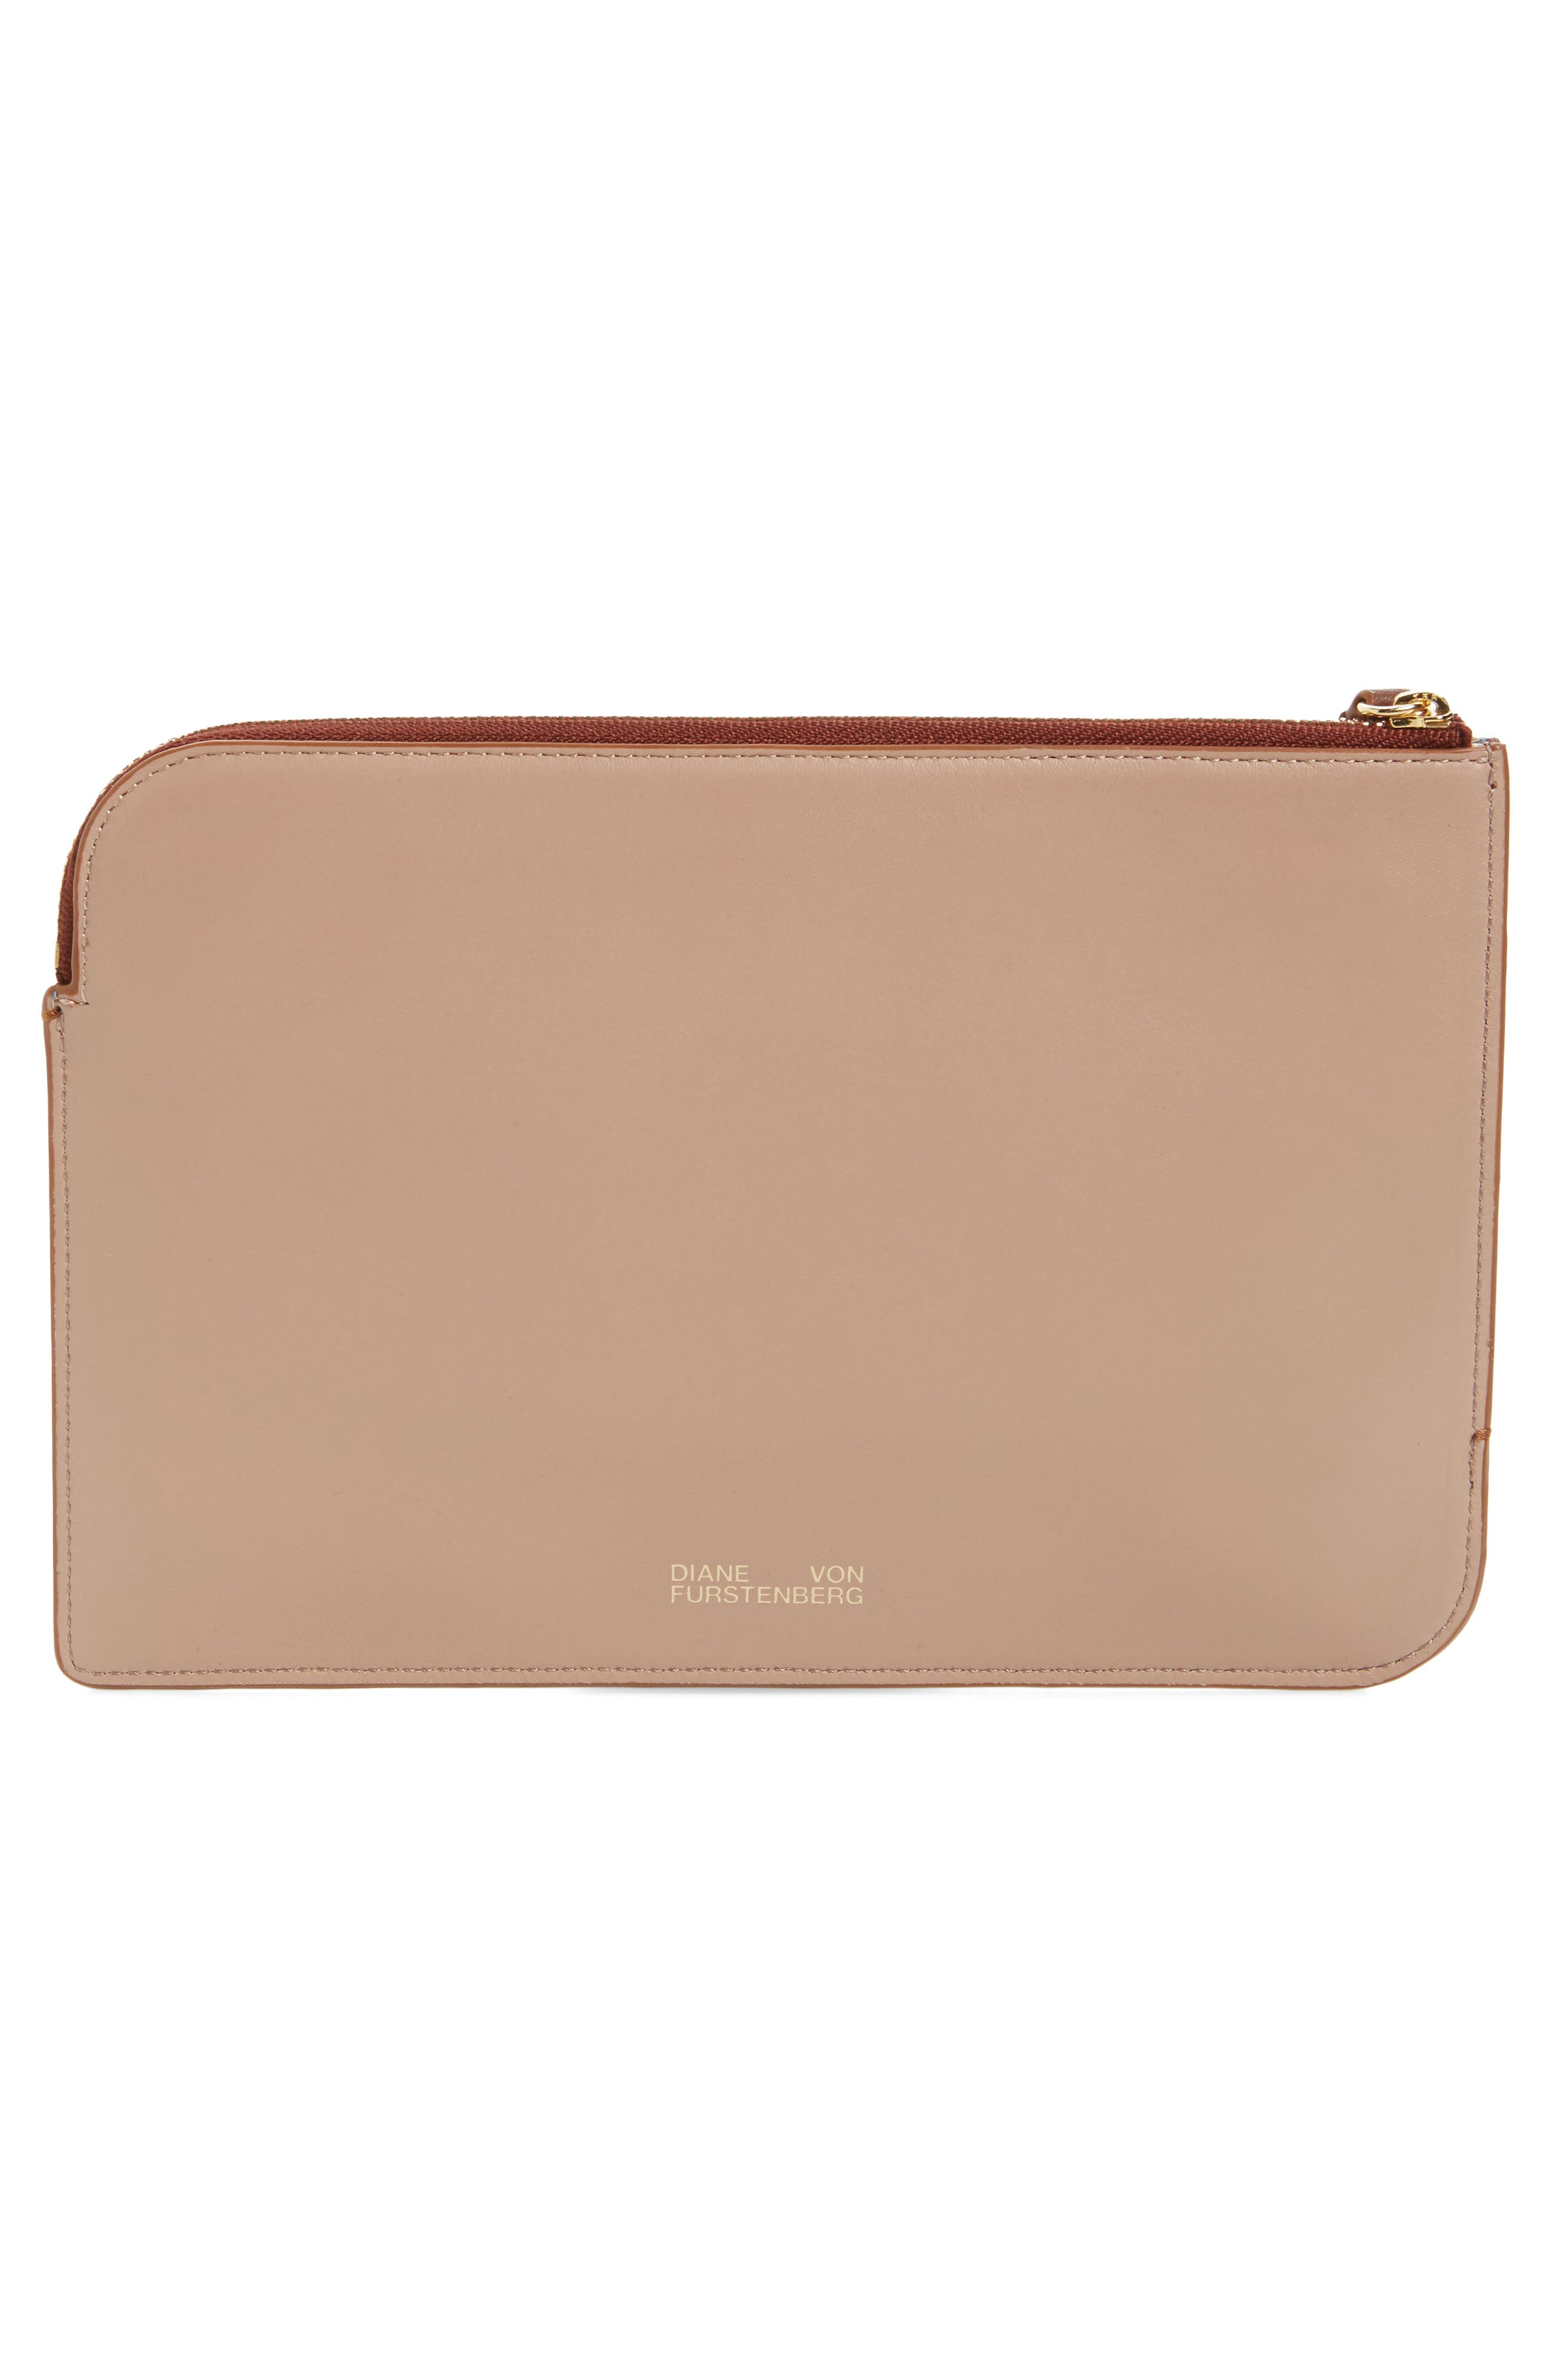 Medium Leather Zip Pouch,                             Alternate thumbnail 3, color,                             Powder Blue/ Dusty Pink